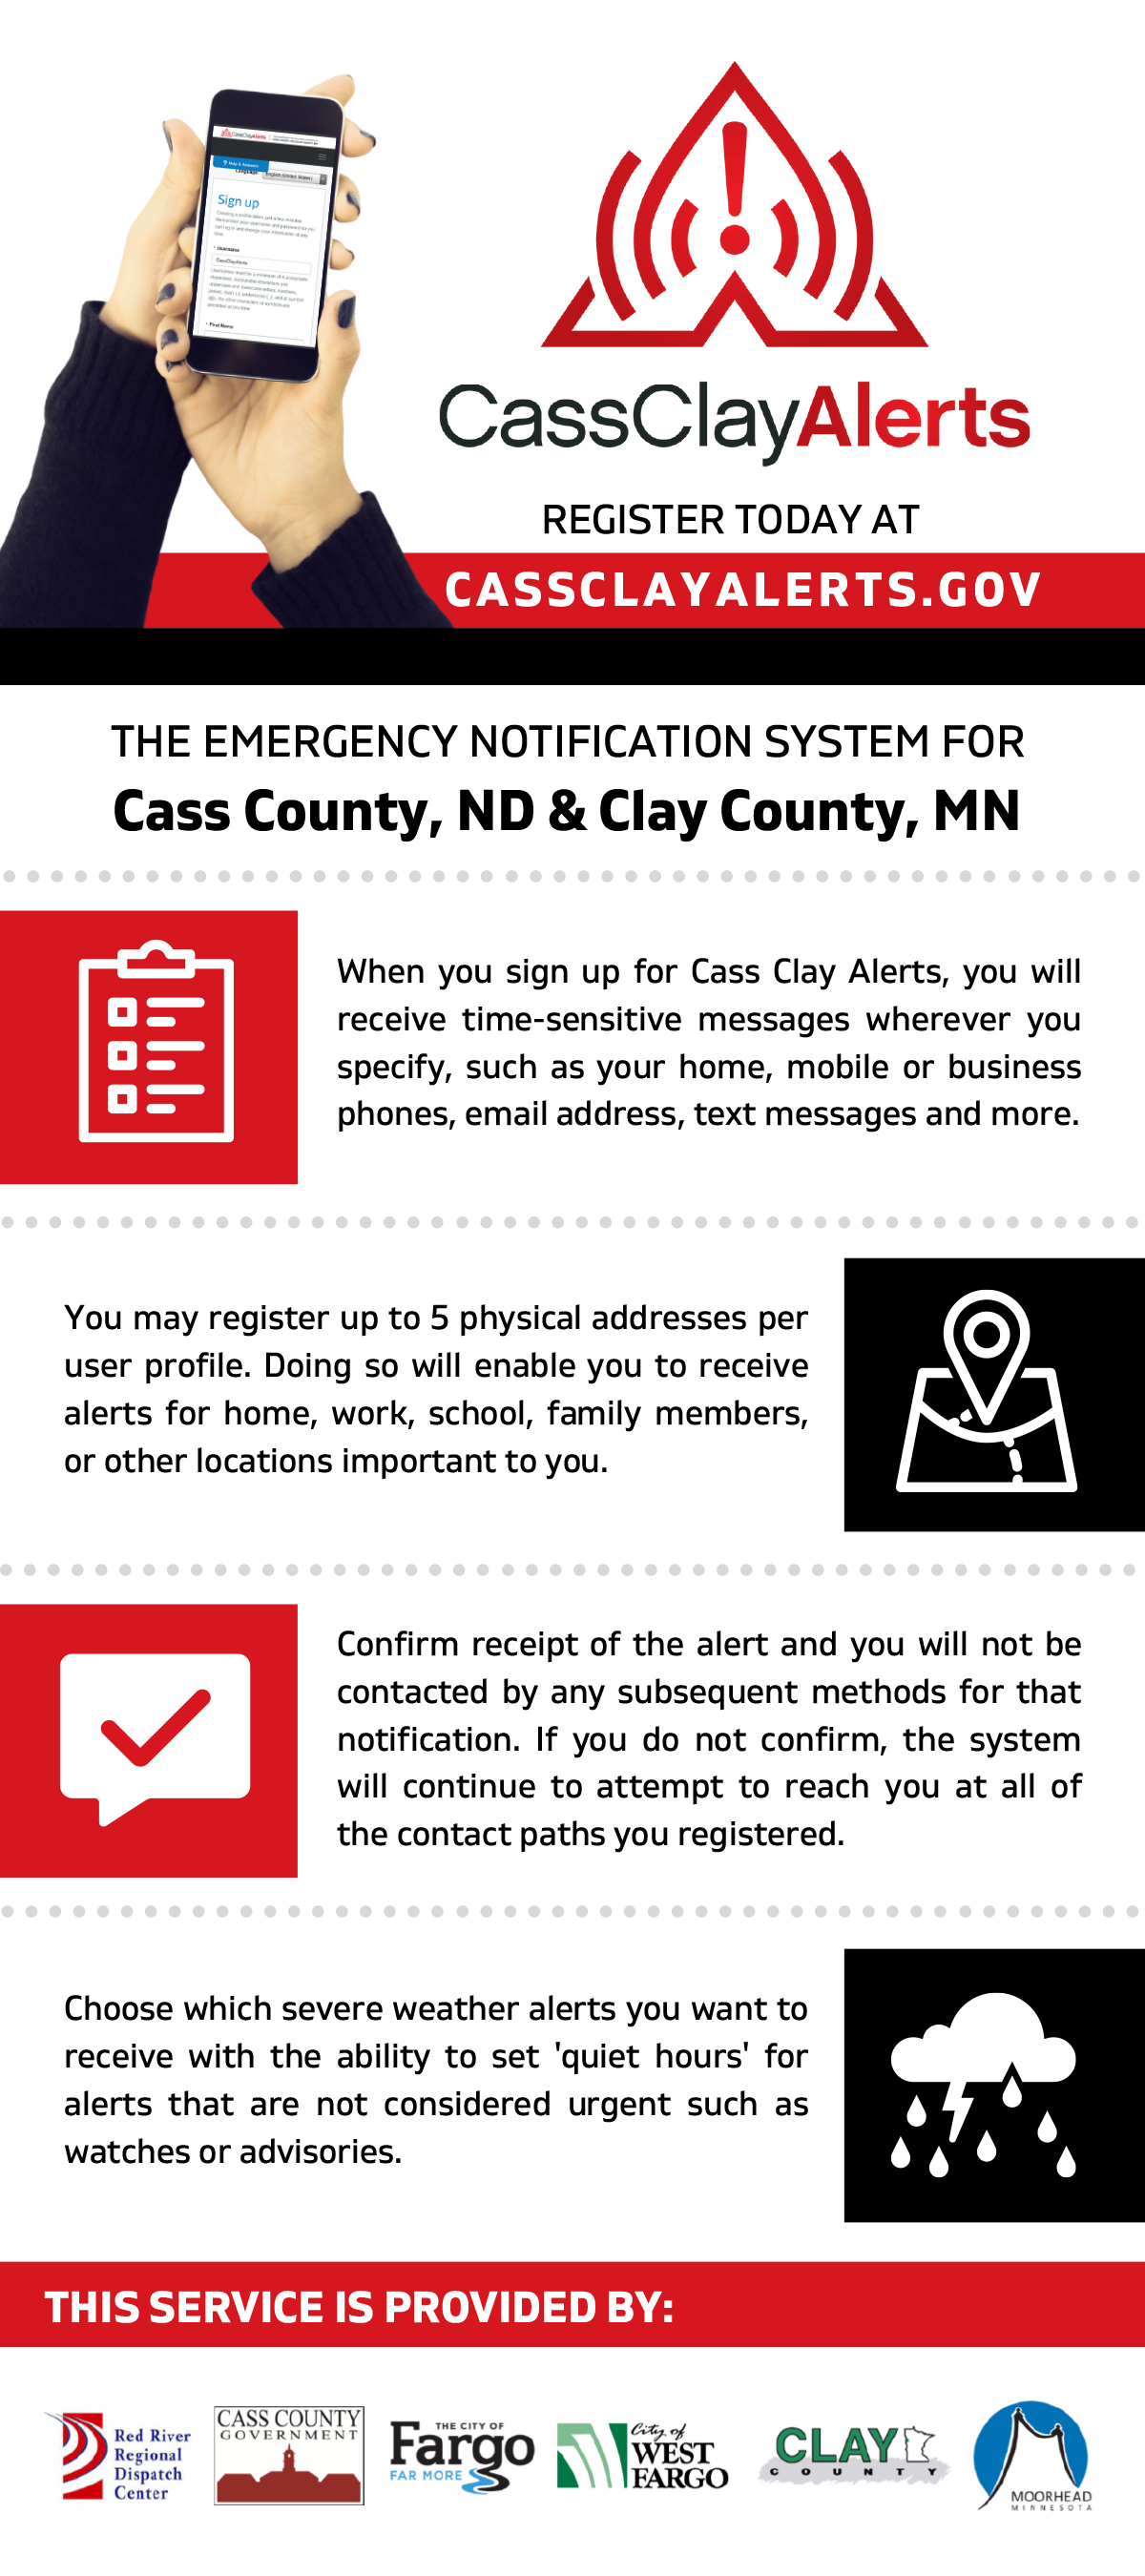 JURISDICTIONAL Rack Card Register Cass Clay Alerts